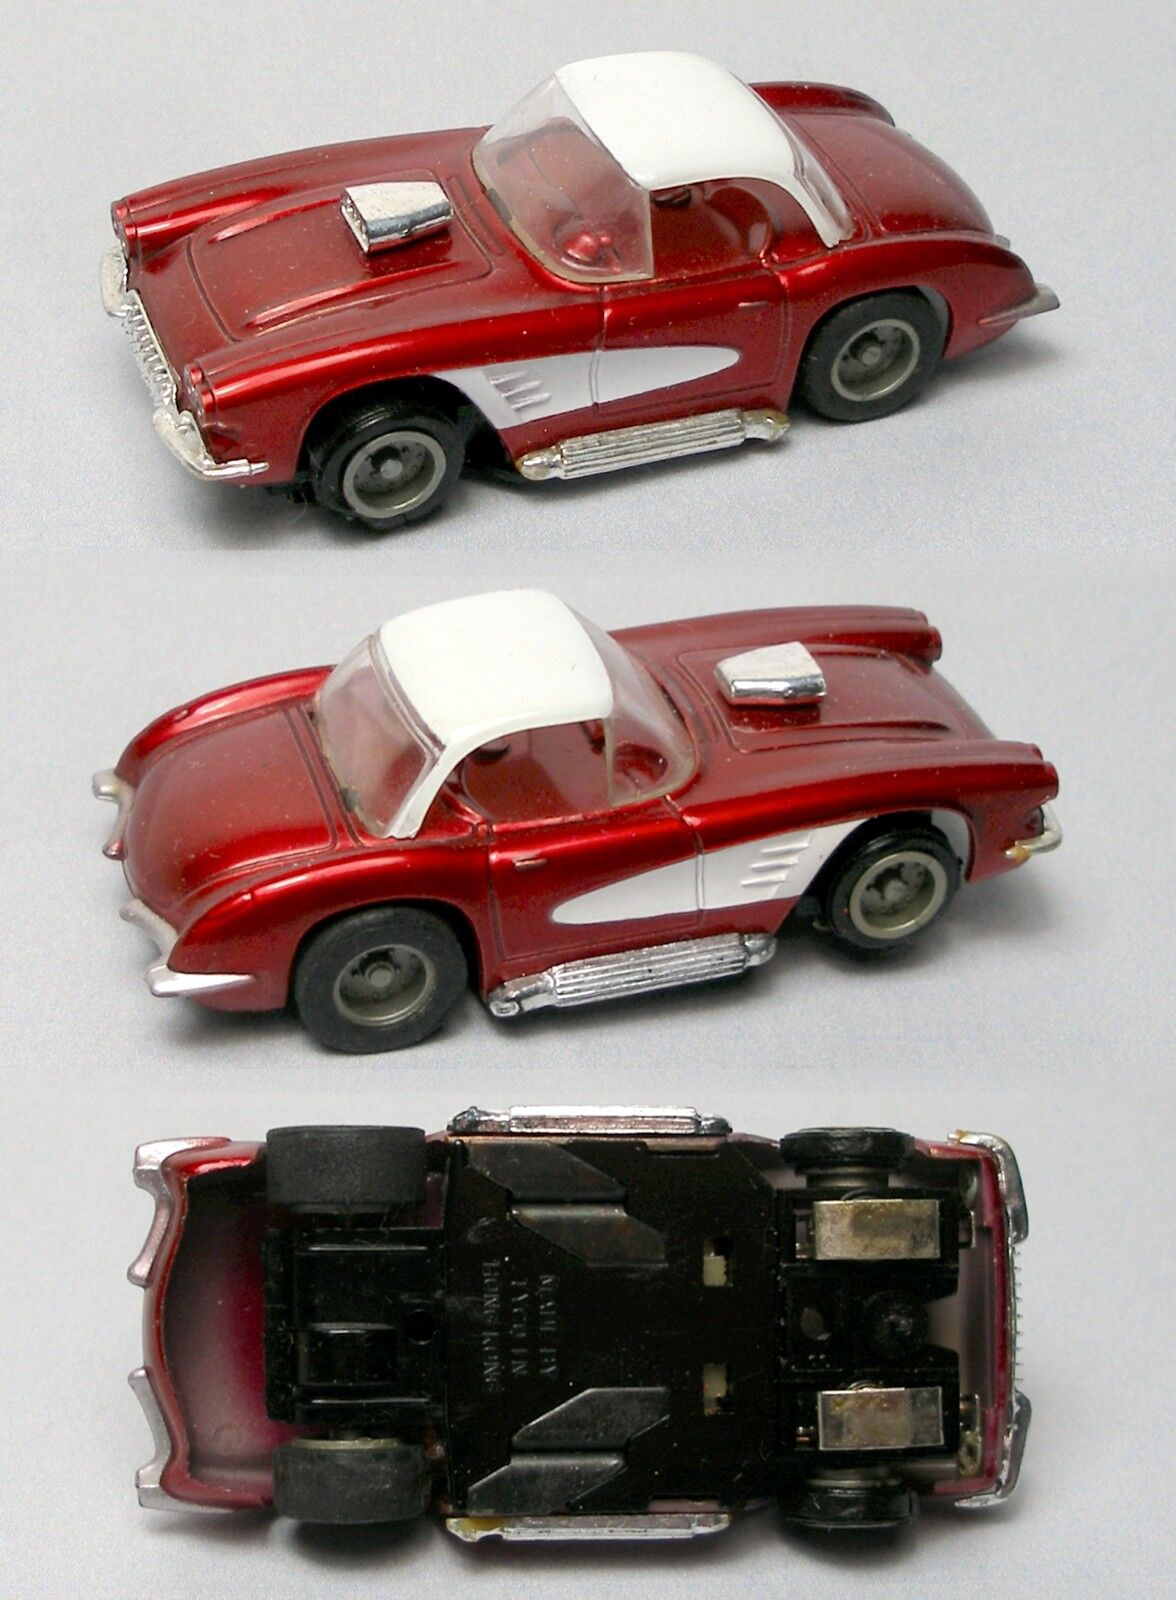 1977 Tyco'60 CHEVY CORVETTE tycopro slot car 1960 Candy Apple rouge 8906 Nuages